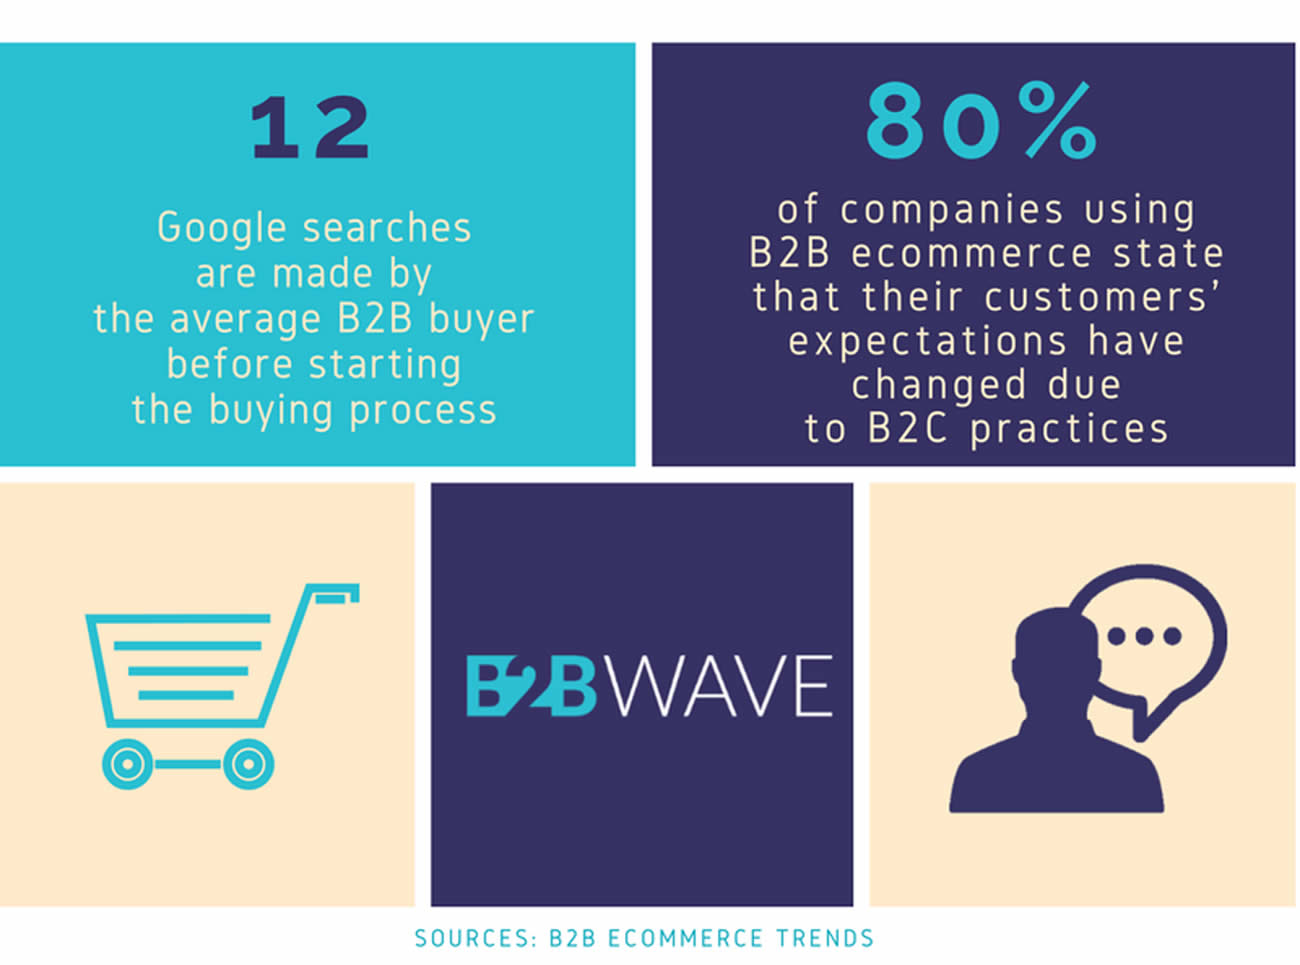 Stats about B2B wholesale ecommerce